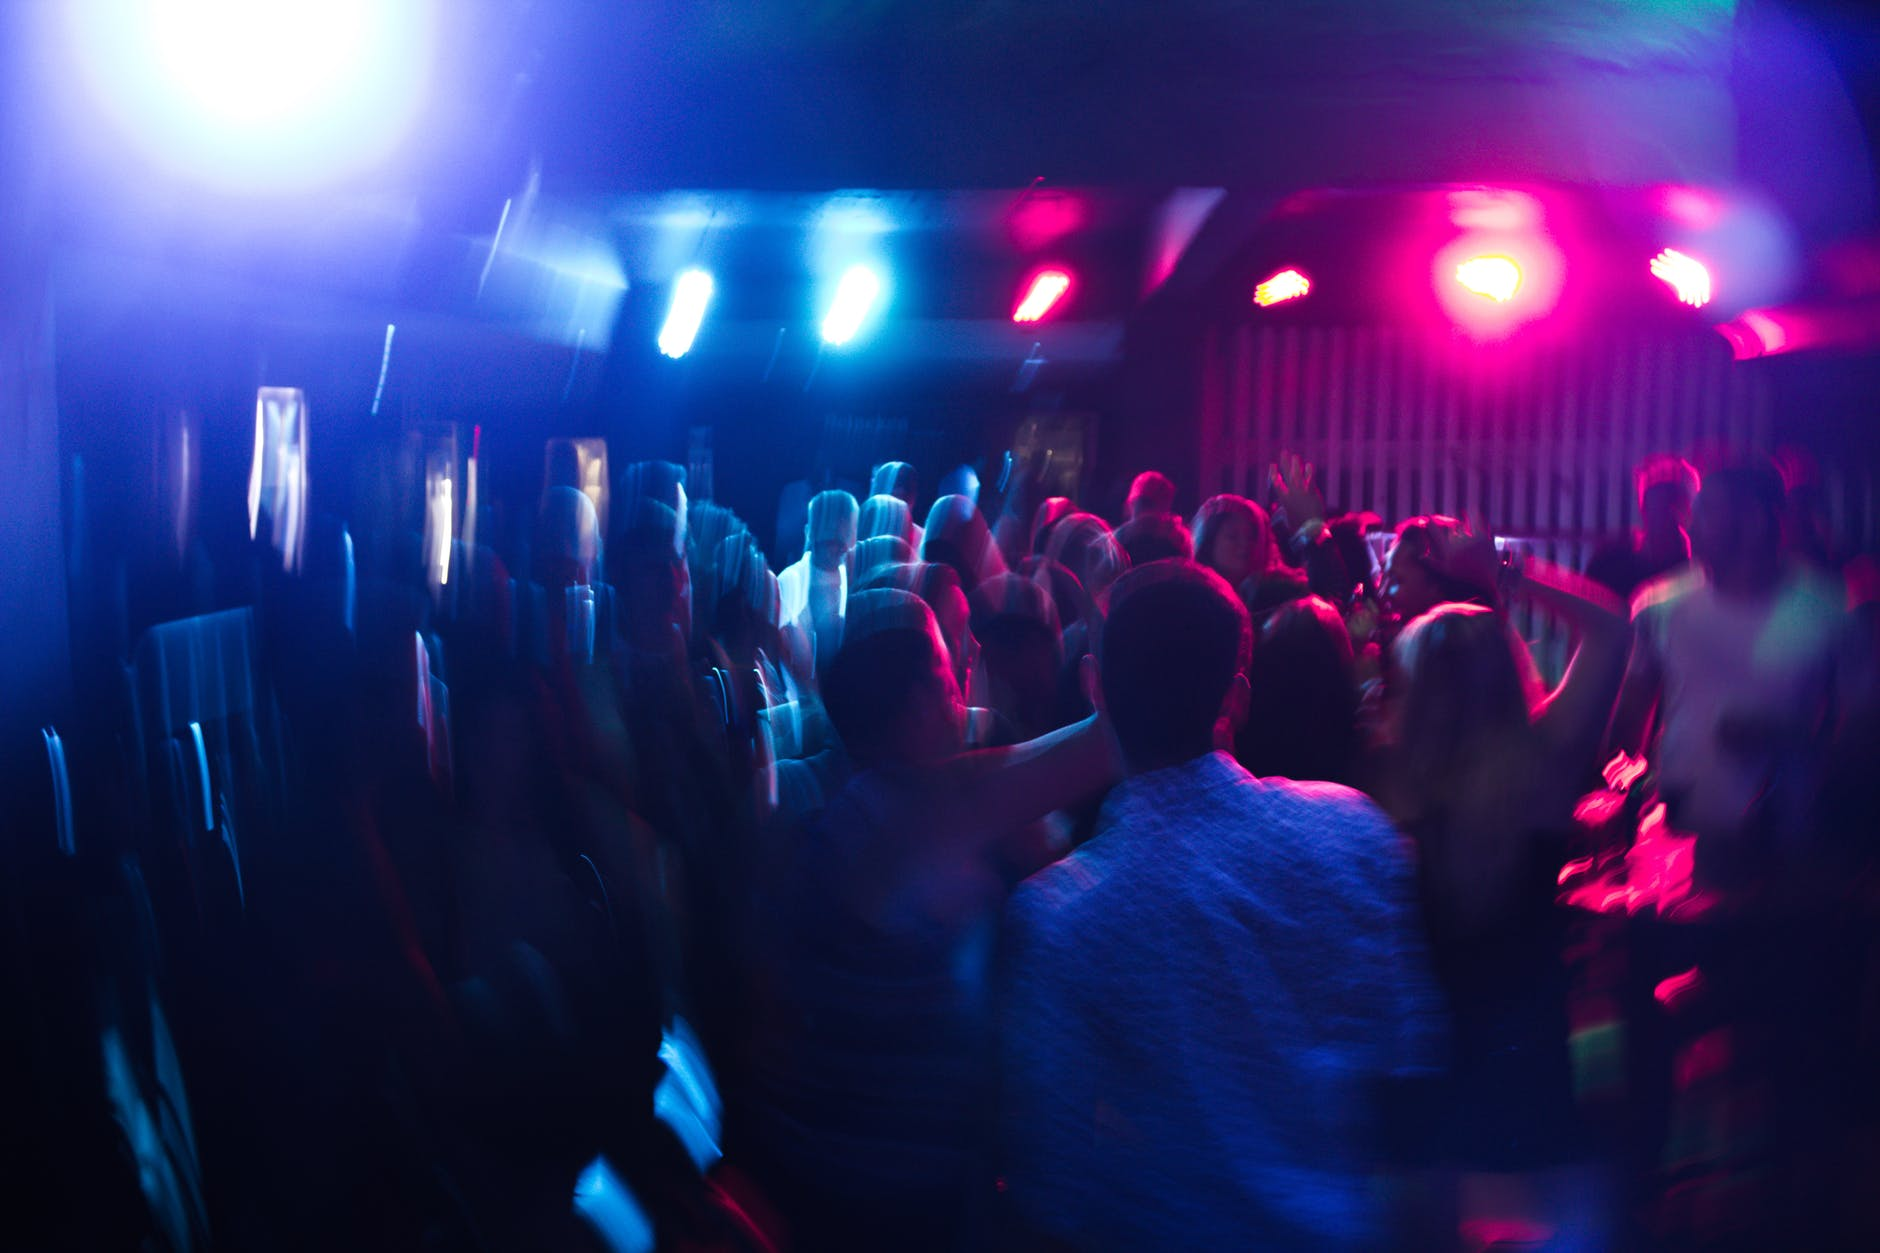 Gay Night Clubs Aren't For Straight Girls, They're For Panic Attacks Induced By Social Anxiety